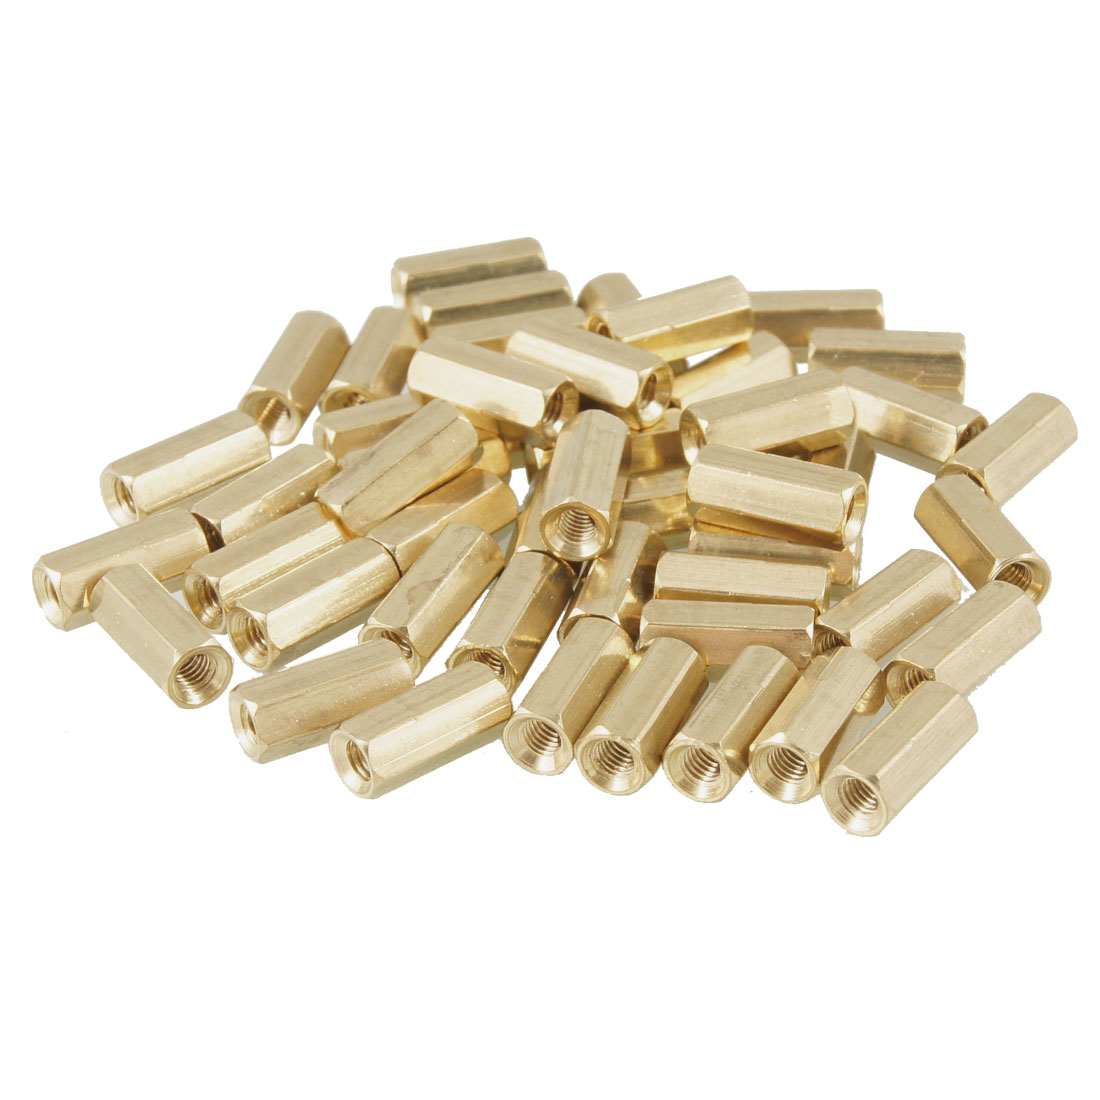 50 Pcs M3X9mm Hex Head Female Thread PCB Standoff Spacers